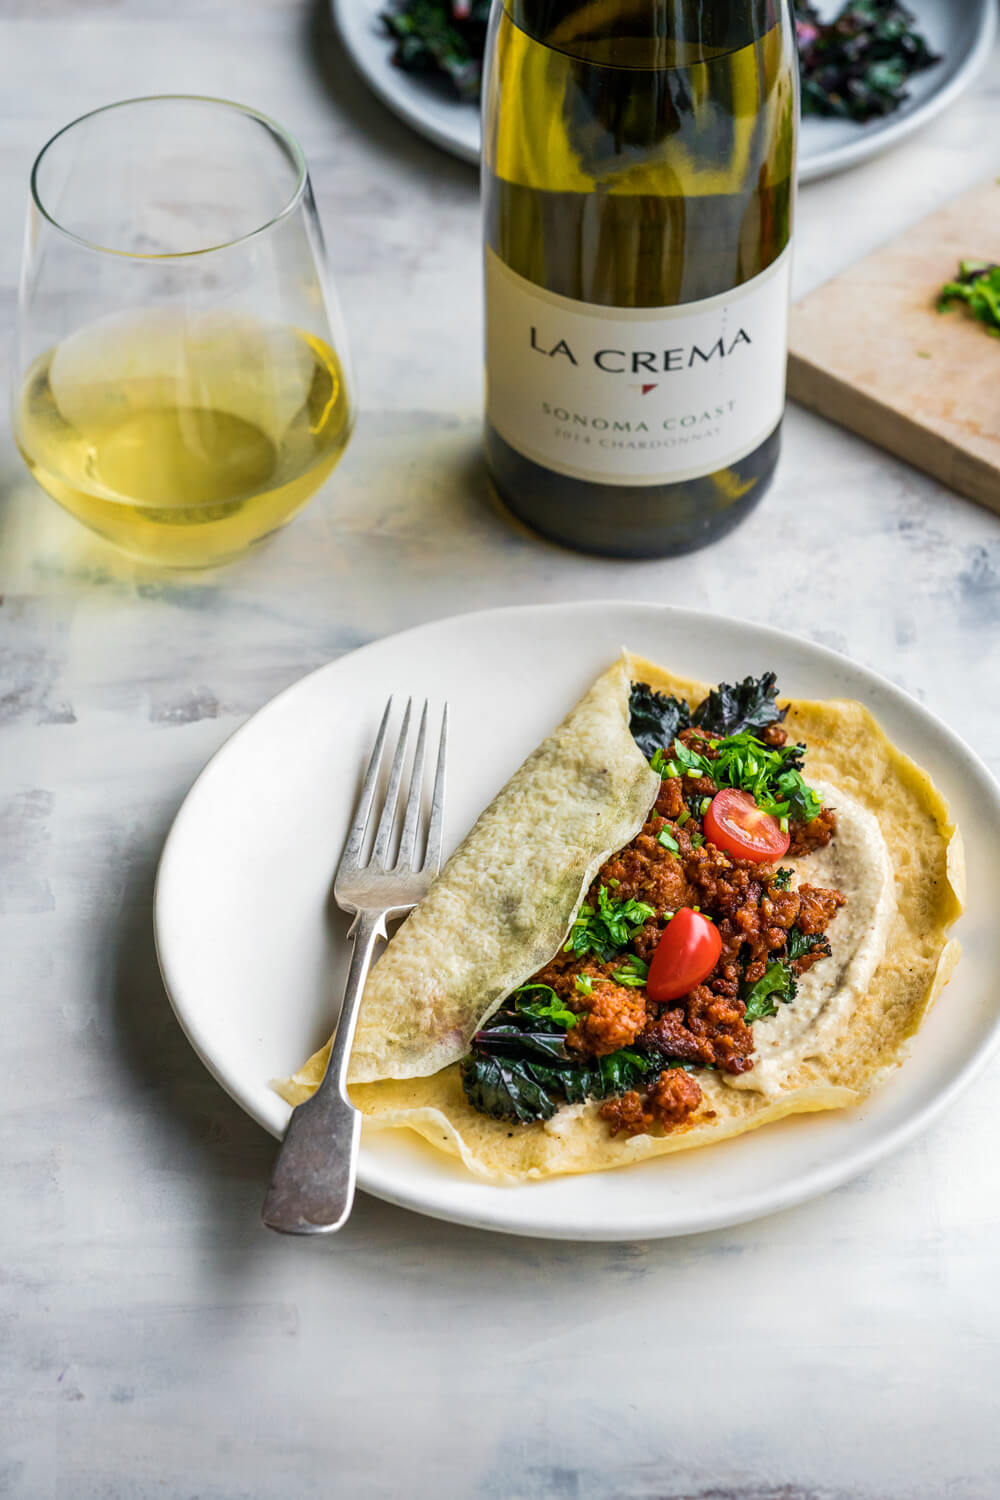 Chorizo Shawarma Crepes with Lemon Tahini paired with La Crema Sonoma Coast Chardonnay